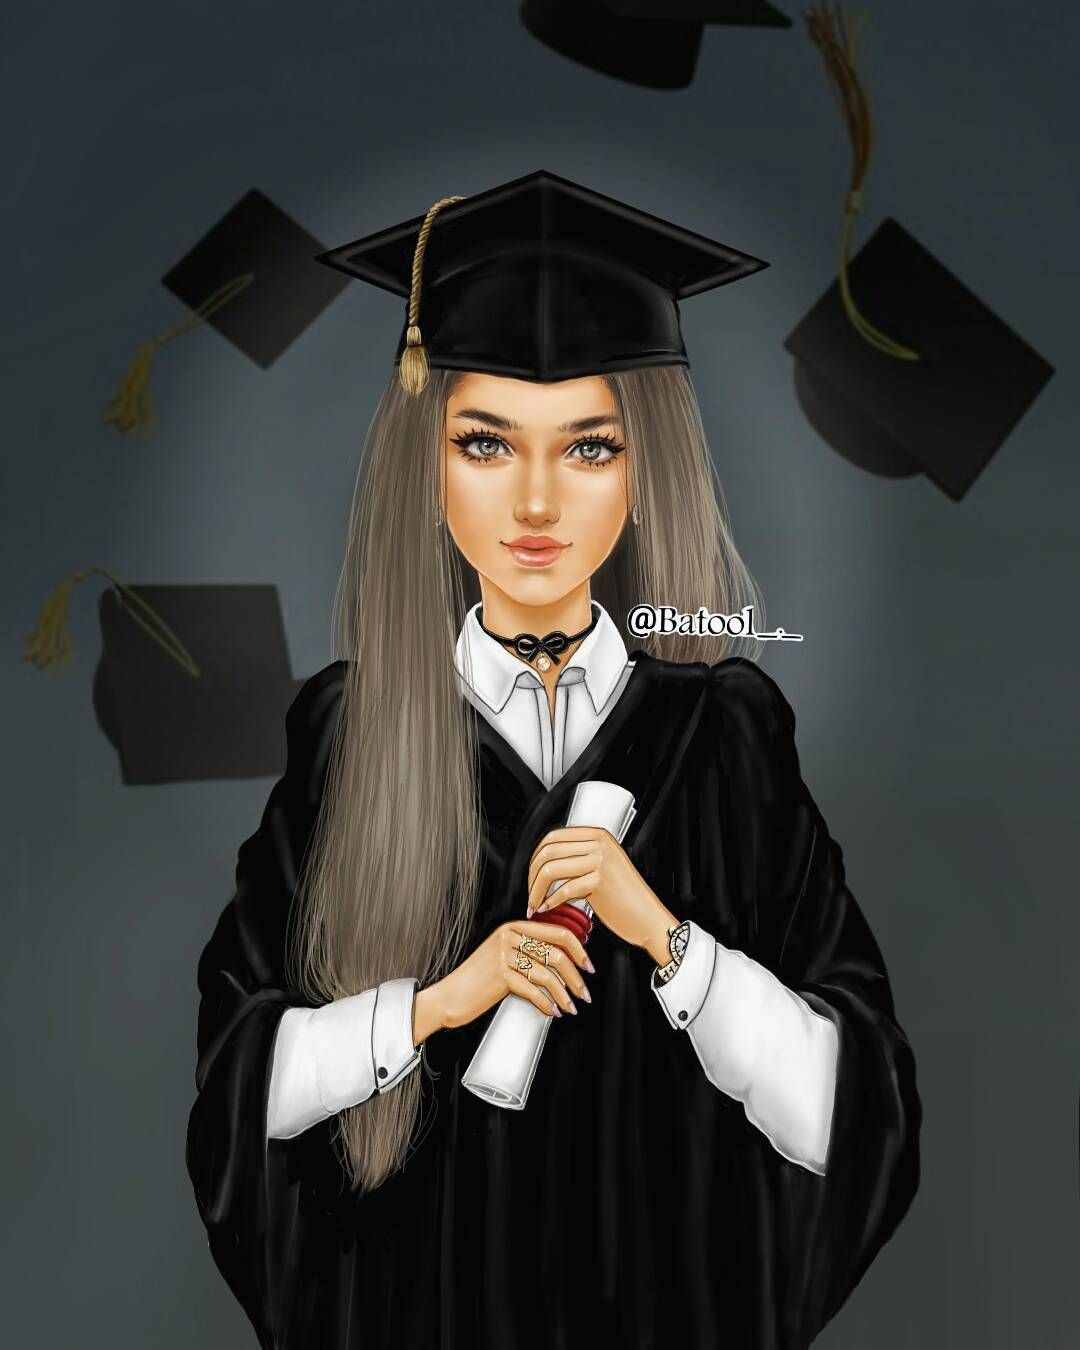 Animated Lonely Girl Wallpapers Pin Girly M Graduating Images To Pinterest